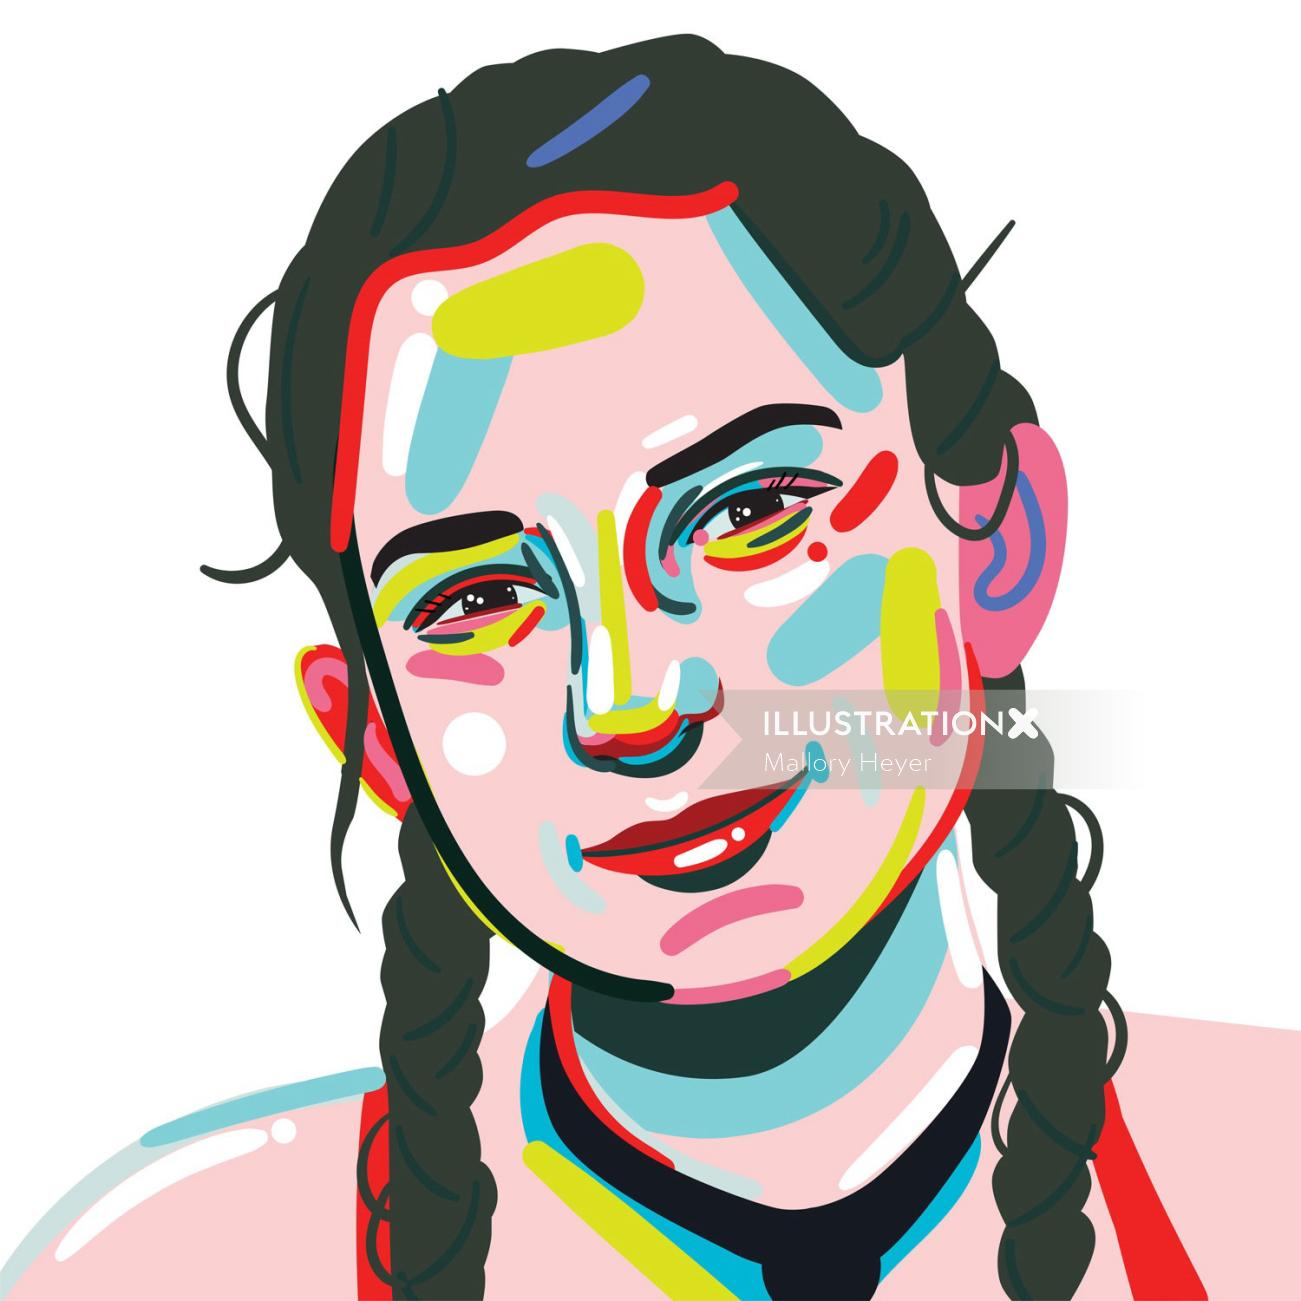 Portrait illustration of Kyra Condie by Mallory Heyer